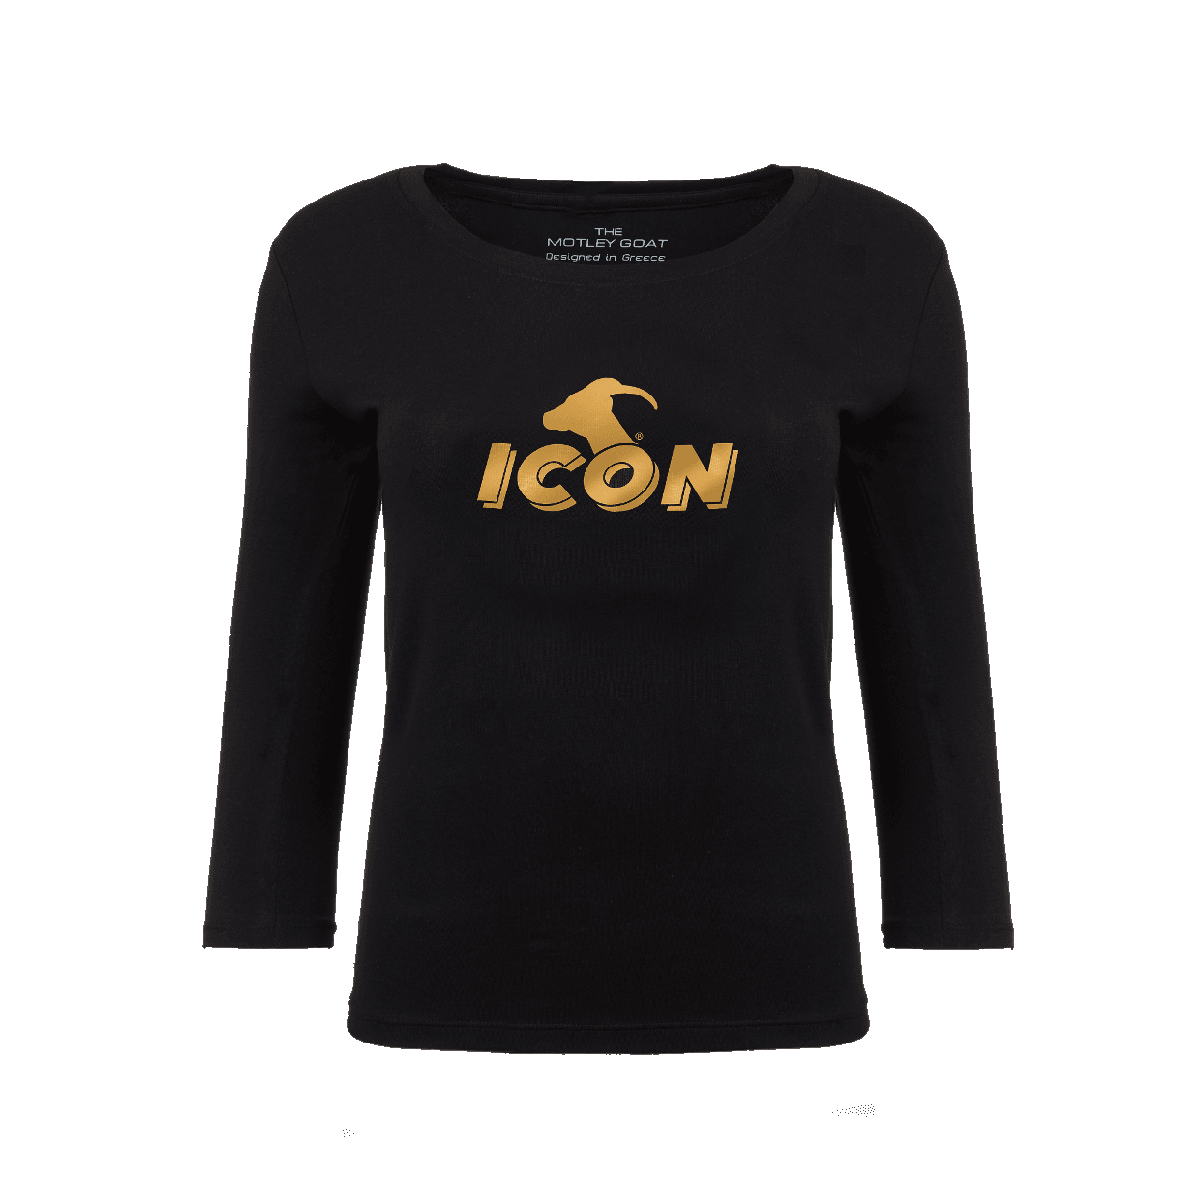 Women's 3/4 Sleeve Stretch T-Shirt